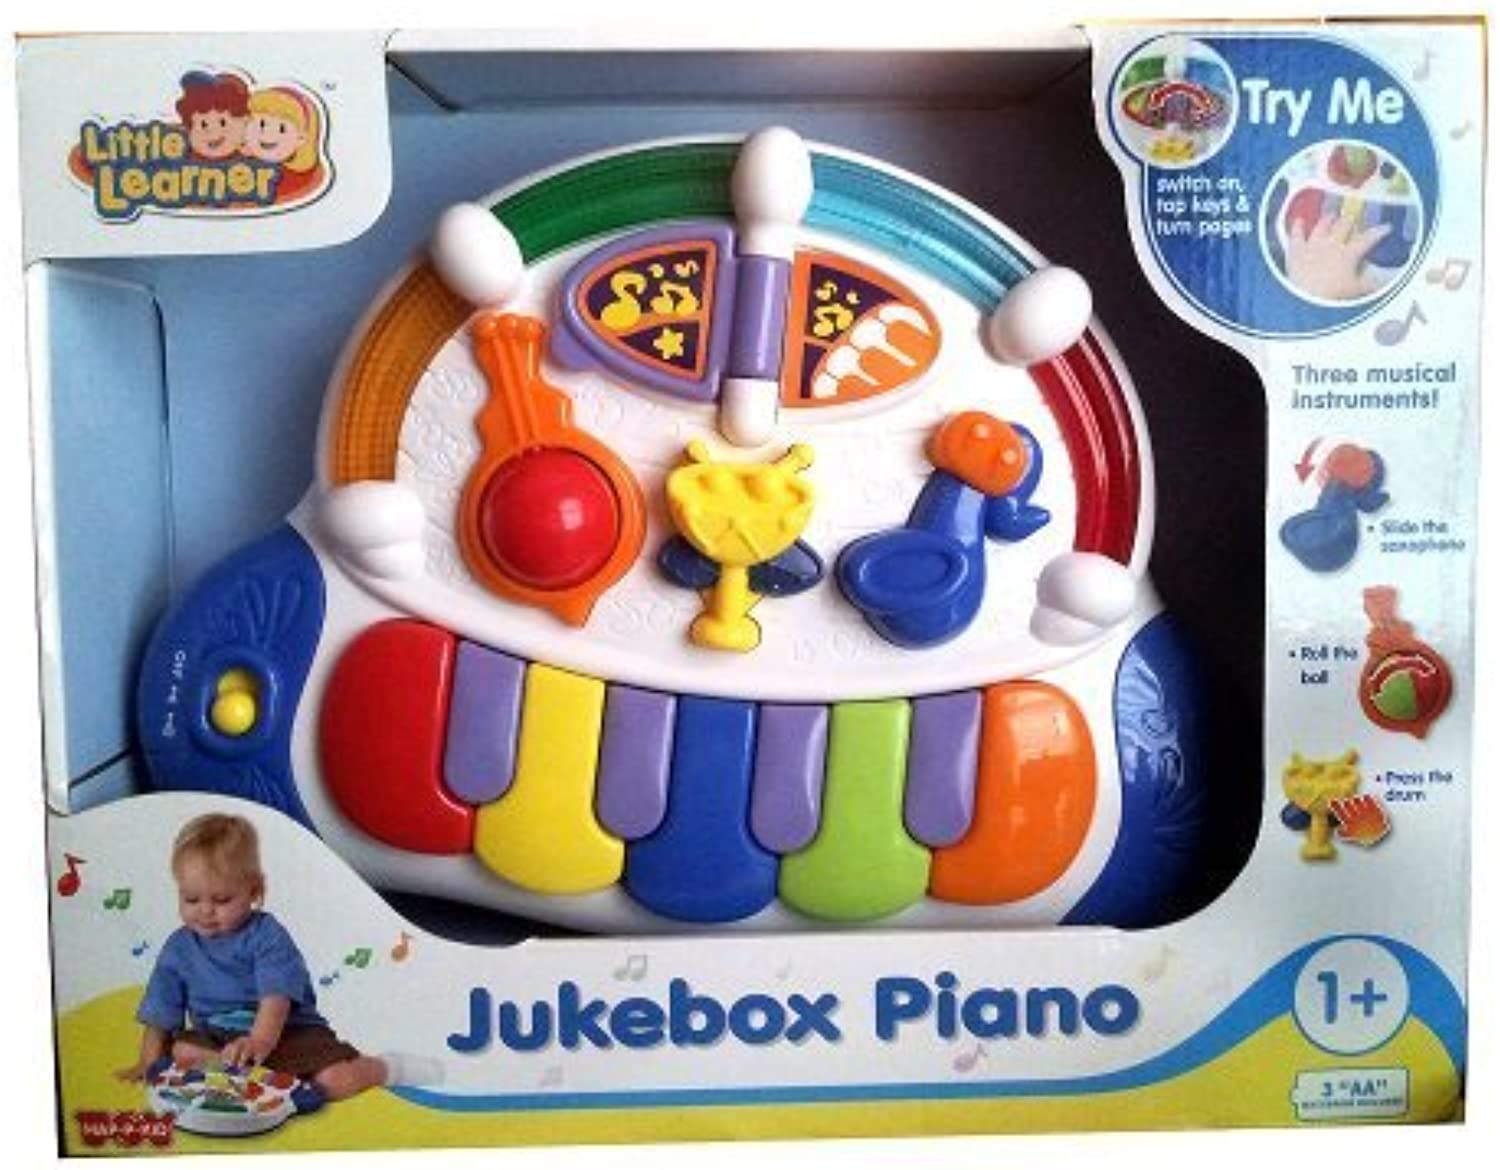 Little Learner Jukebox Piano by Little Learner